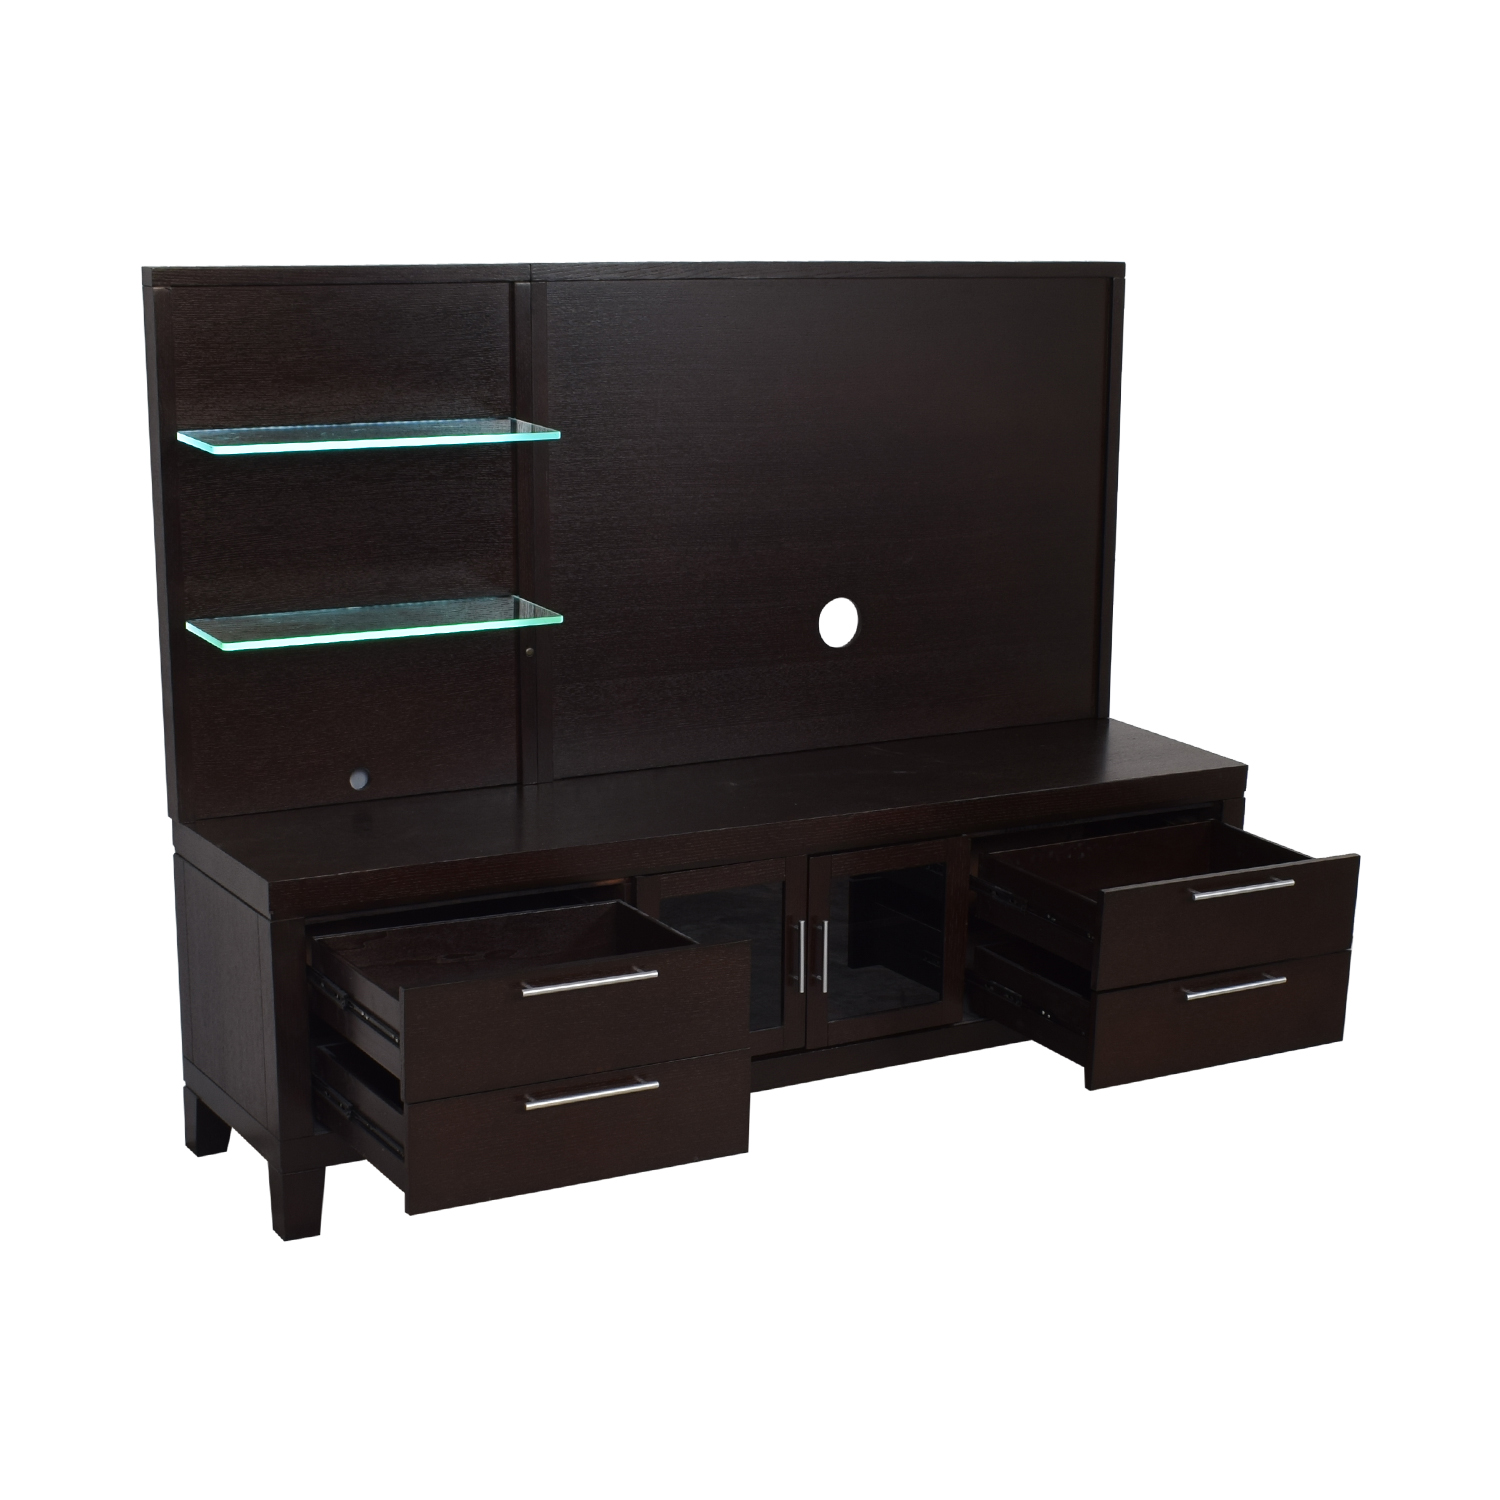 Casana Furniture Television Stand with Back Panel Casana Furniture